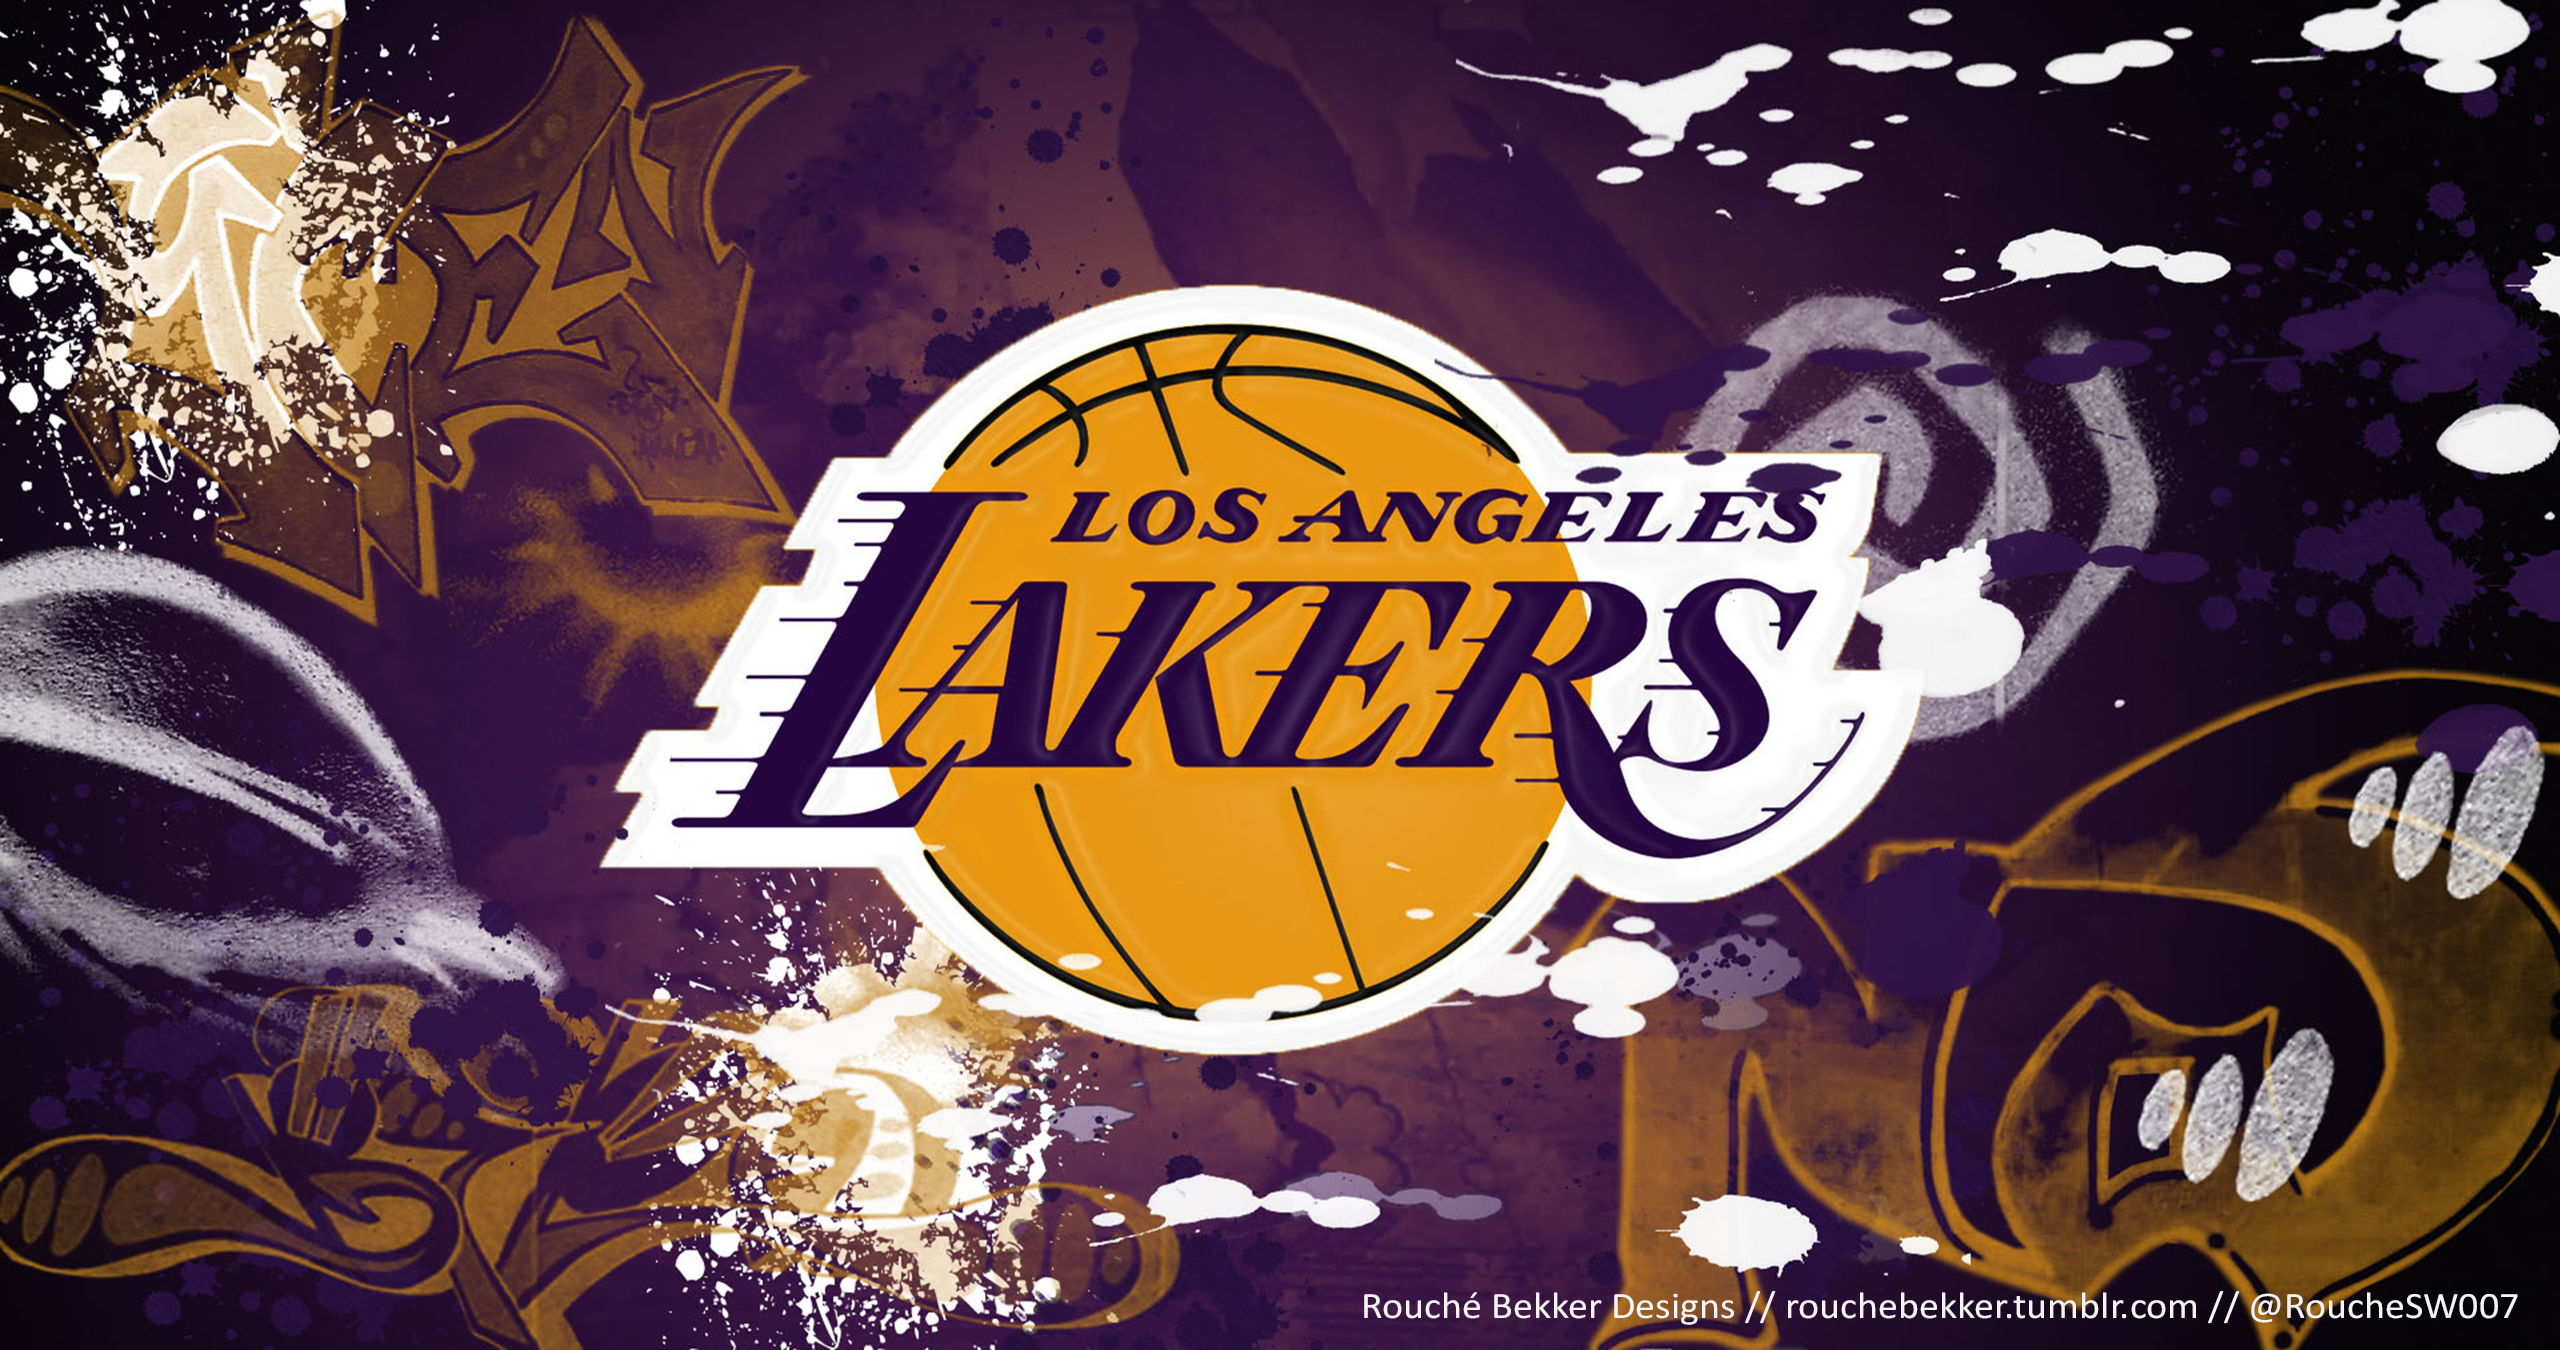 Images of lakers wallpaper 2013 2014 fan image gallery lakers wallpaper 2014 voltagebd Image collections